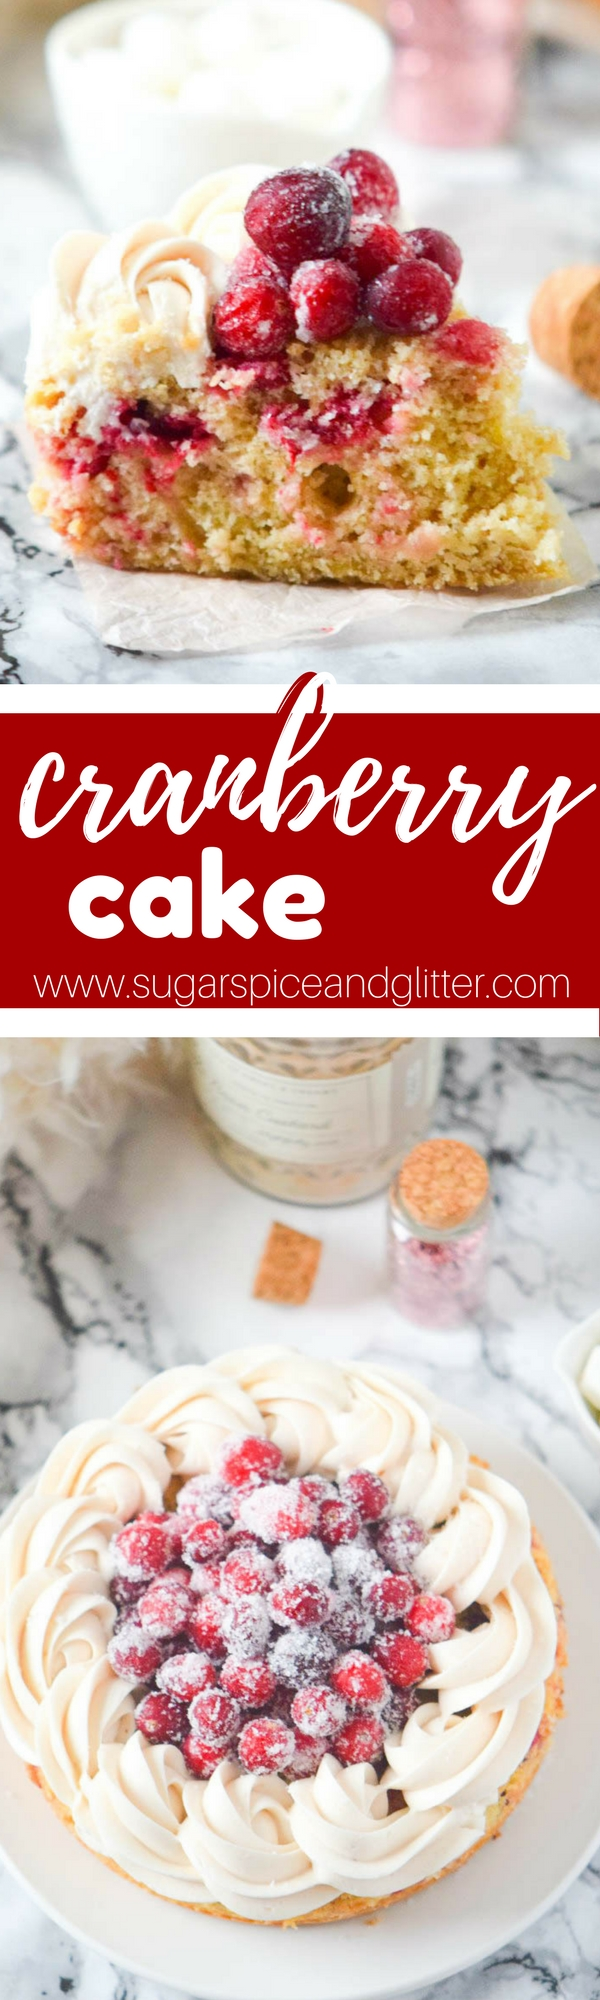 A simple cranberry cake with sugared cranberries and vanilla buttercream - this cake is super simple and perfect for busy holiday schedules